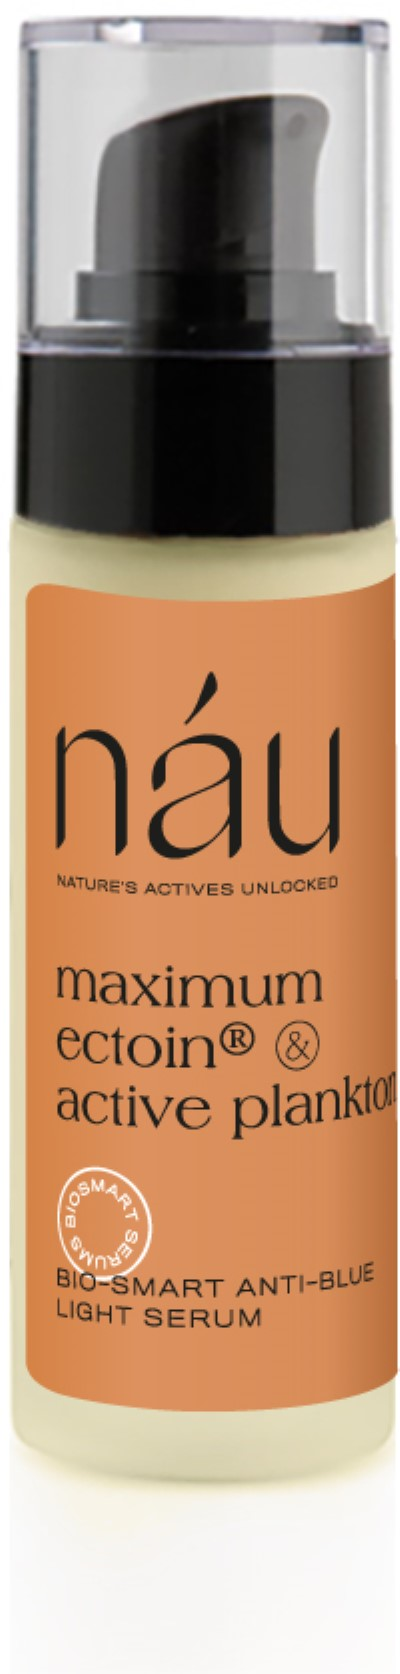 nau Bio-smart Anti-Blue Light Serum